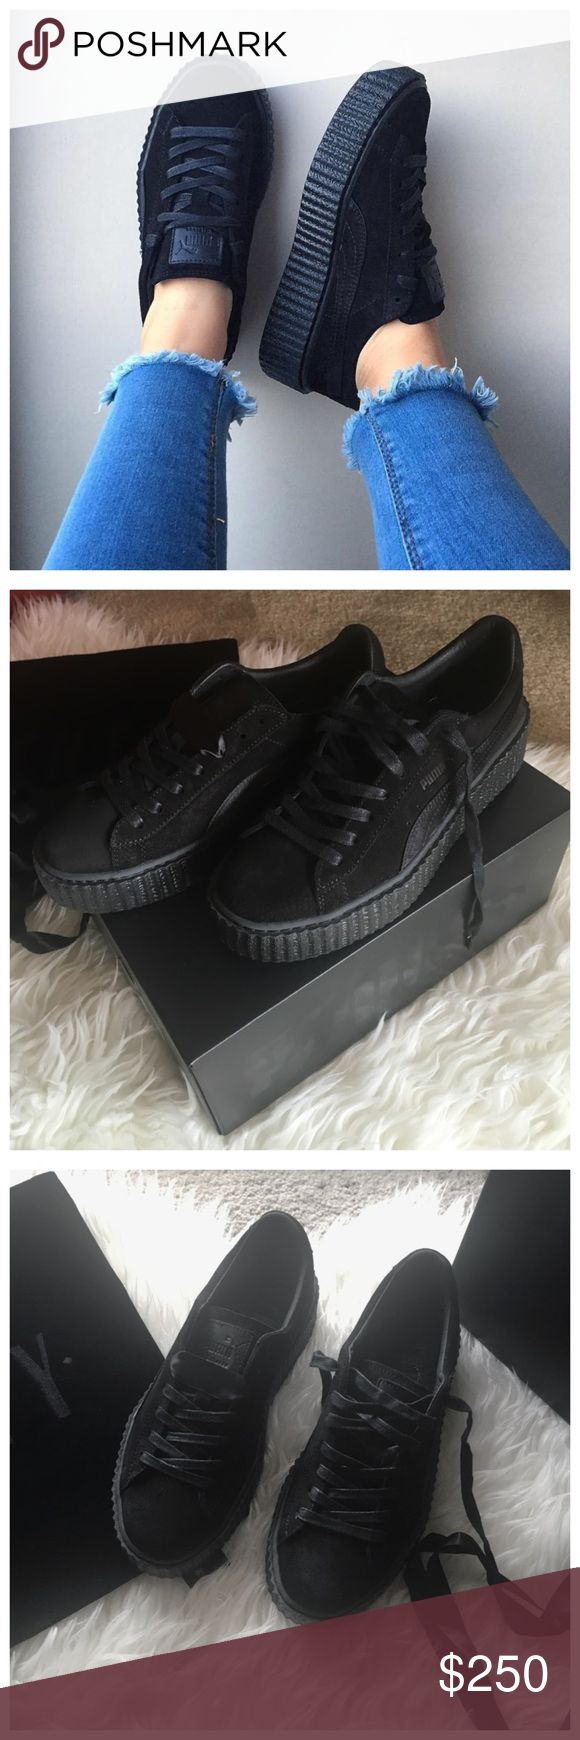 "Rihanna x Fenty Puma Black Satin Suede Creepers ⭐️ FOR SALE ⭐️ Item: Rihanna x Fenty Puma Black Satin Creepers Details: Brand new in box, never worn. Size 8.5 in women's. Suede upper, 1.5"" gum sole. Comes with regular waxed laces & wide satin laces, velvet Fenty dust bag & original Puma box. - NO TRADES OR HOLDS - No lowballing or ""lowest"" - please use the offer button - Please do not comment unless interested - All purchases come with free stickers & jewelry while supplies last! Puma Shoes…"